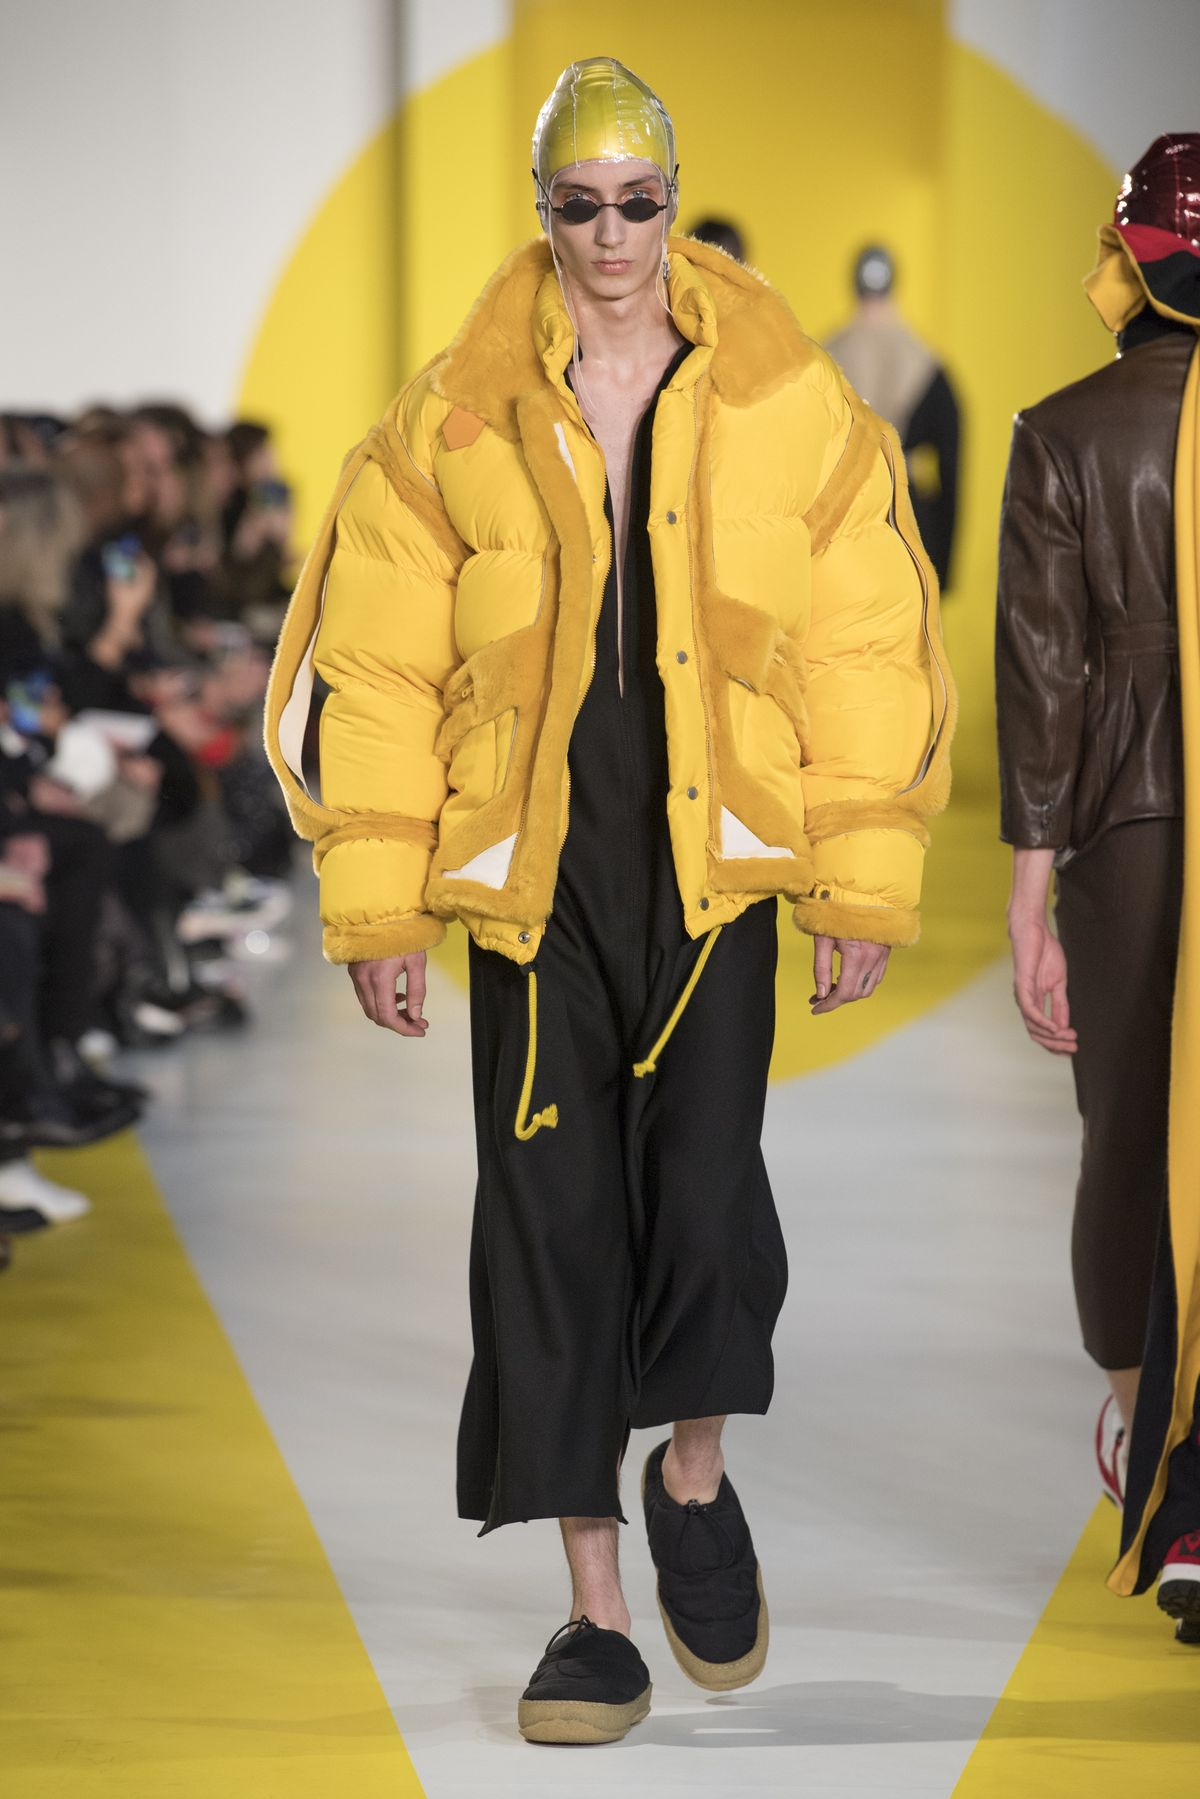 Maison Margiela, Menswear, Herbst Winter 2018 2019